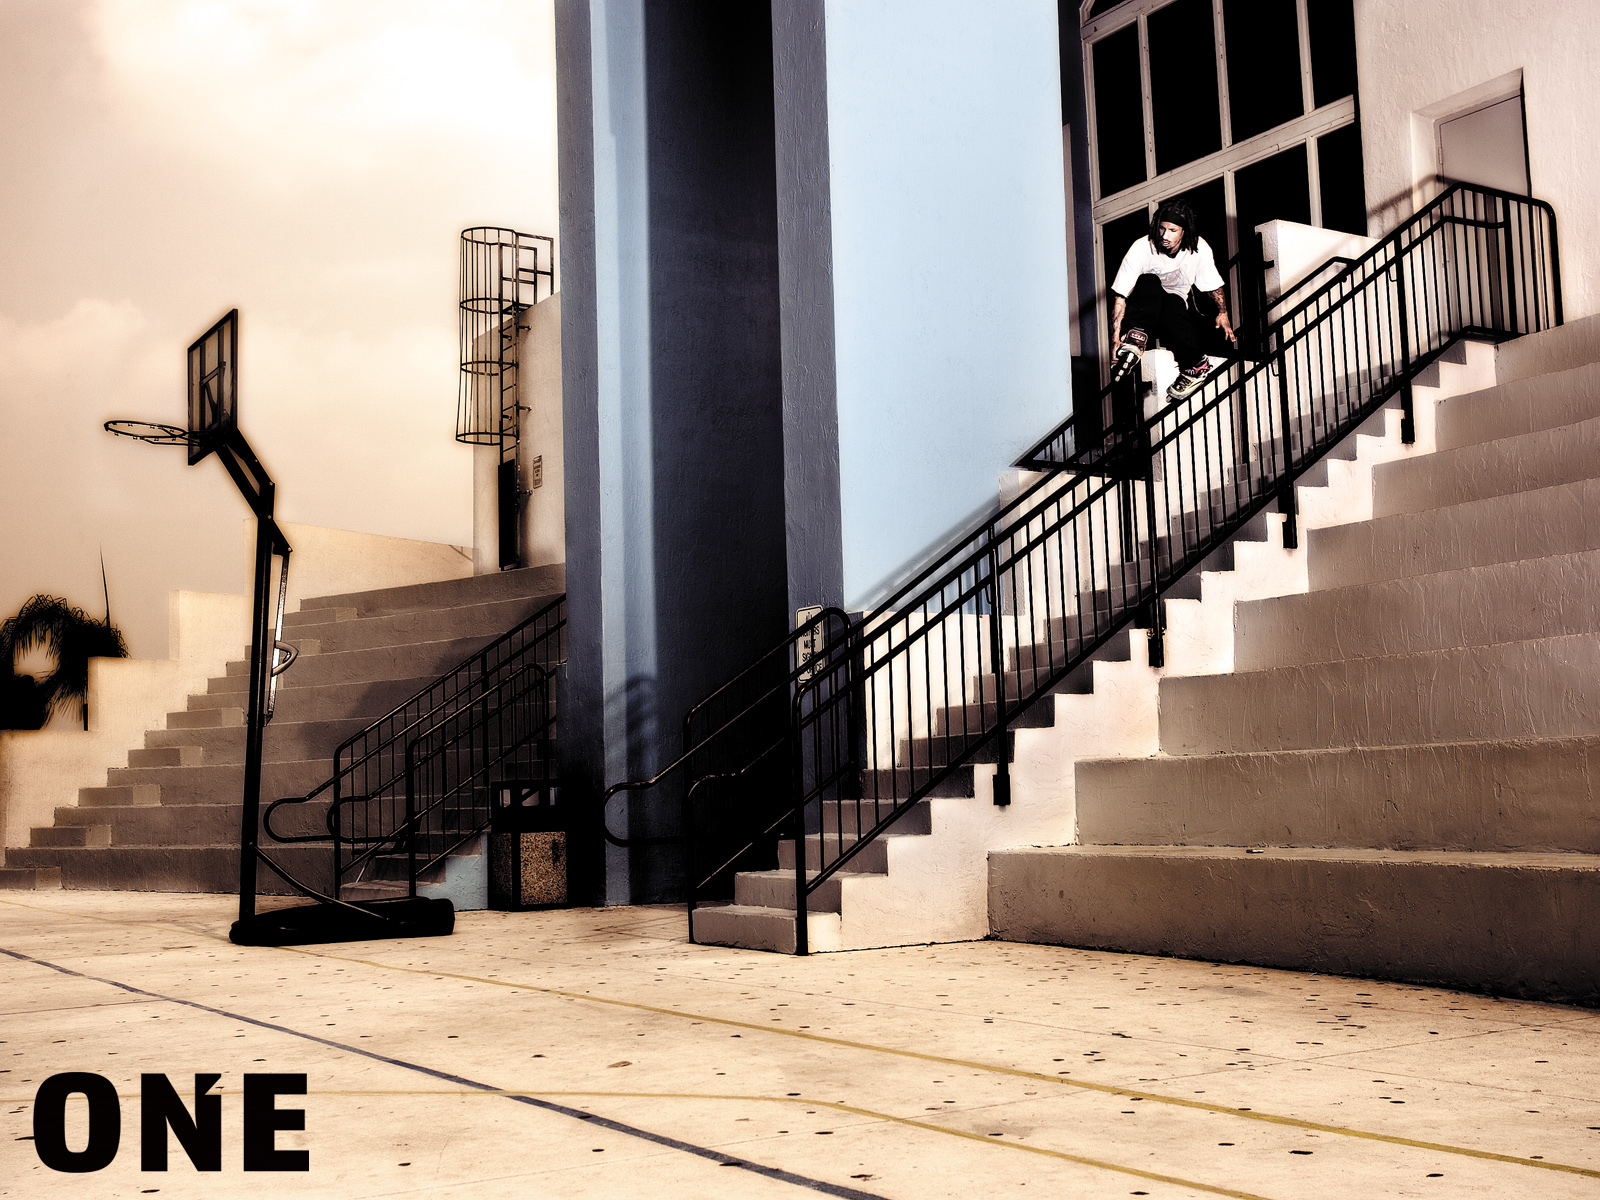 skate down stairs Sport HD Wallpaper